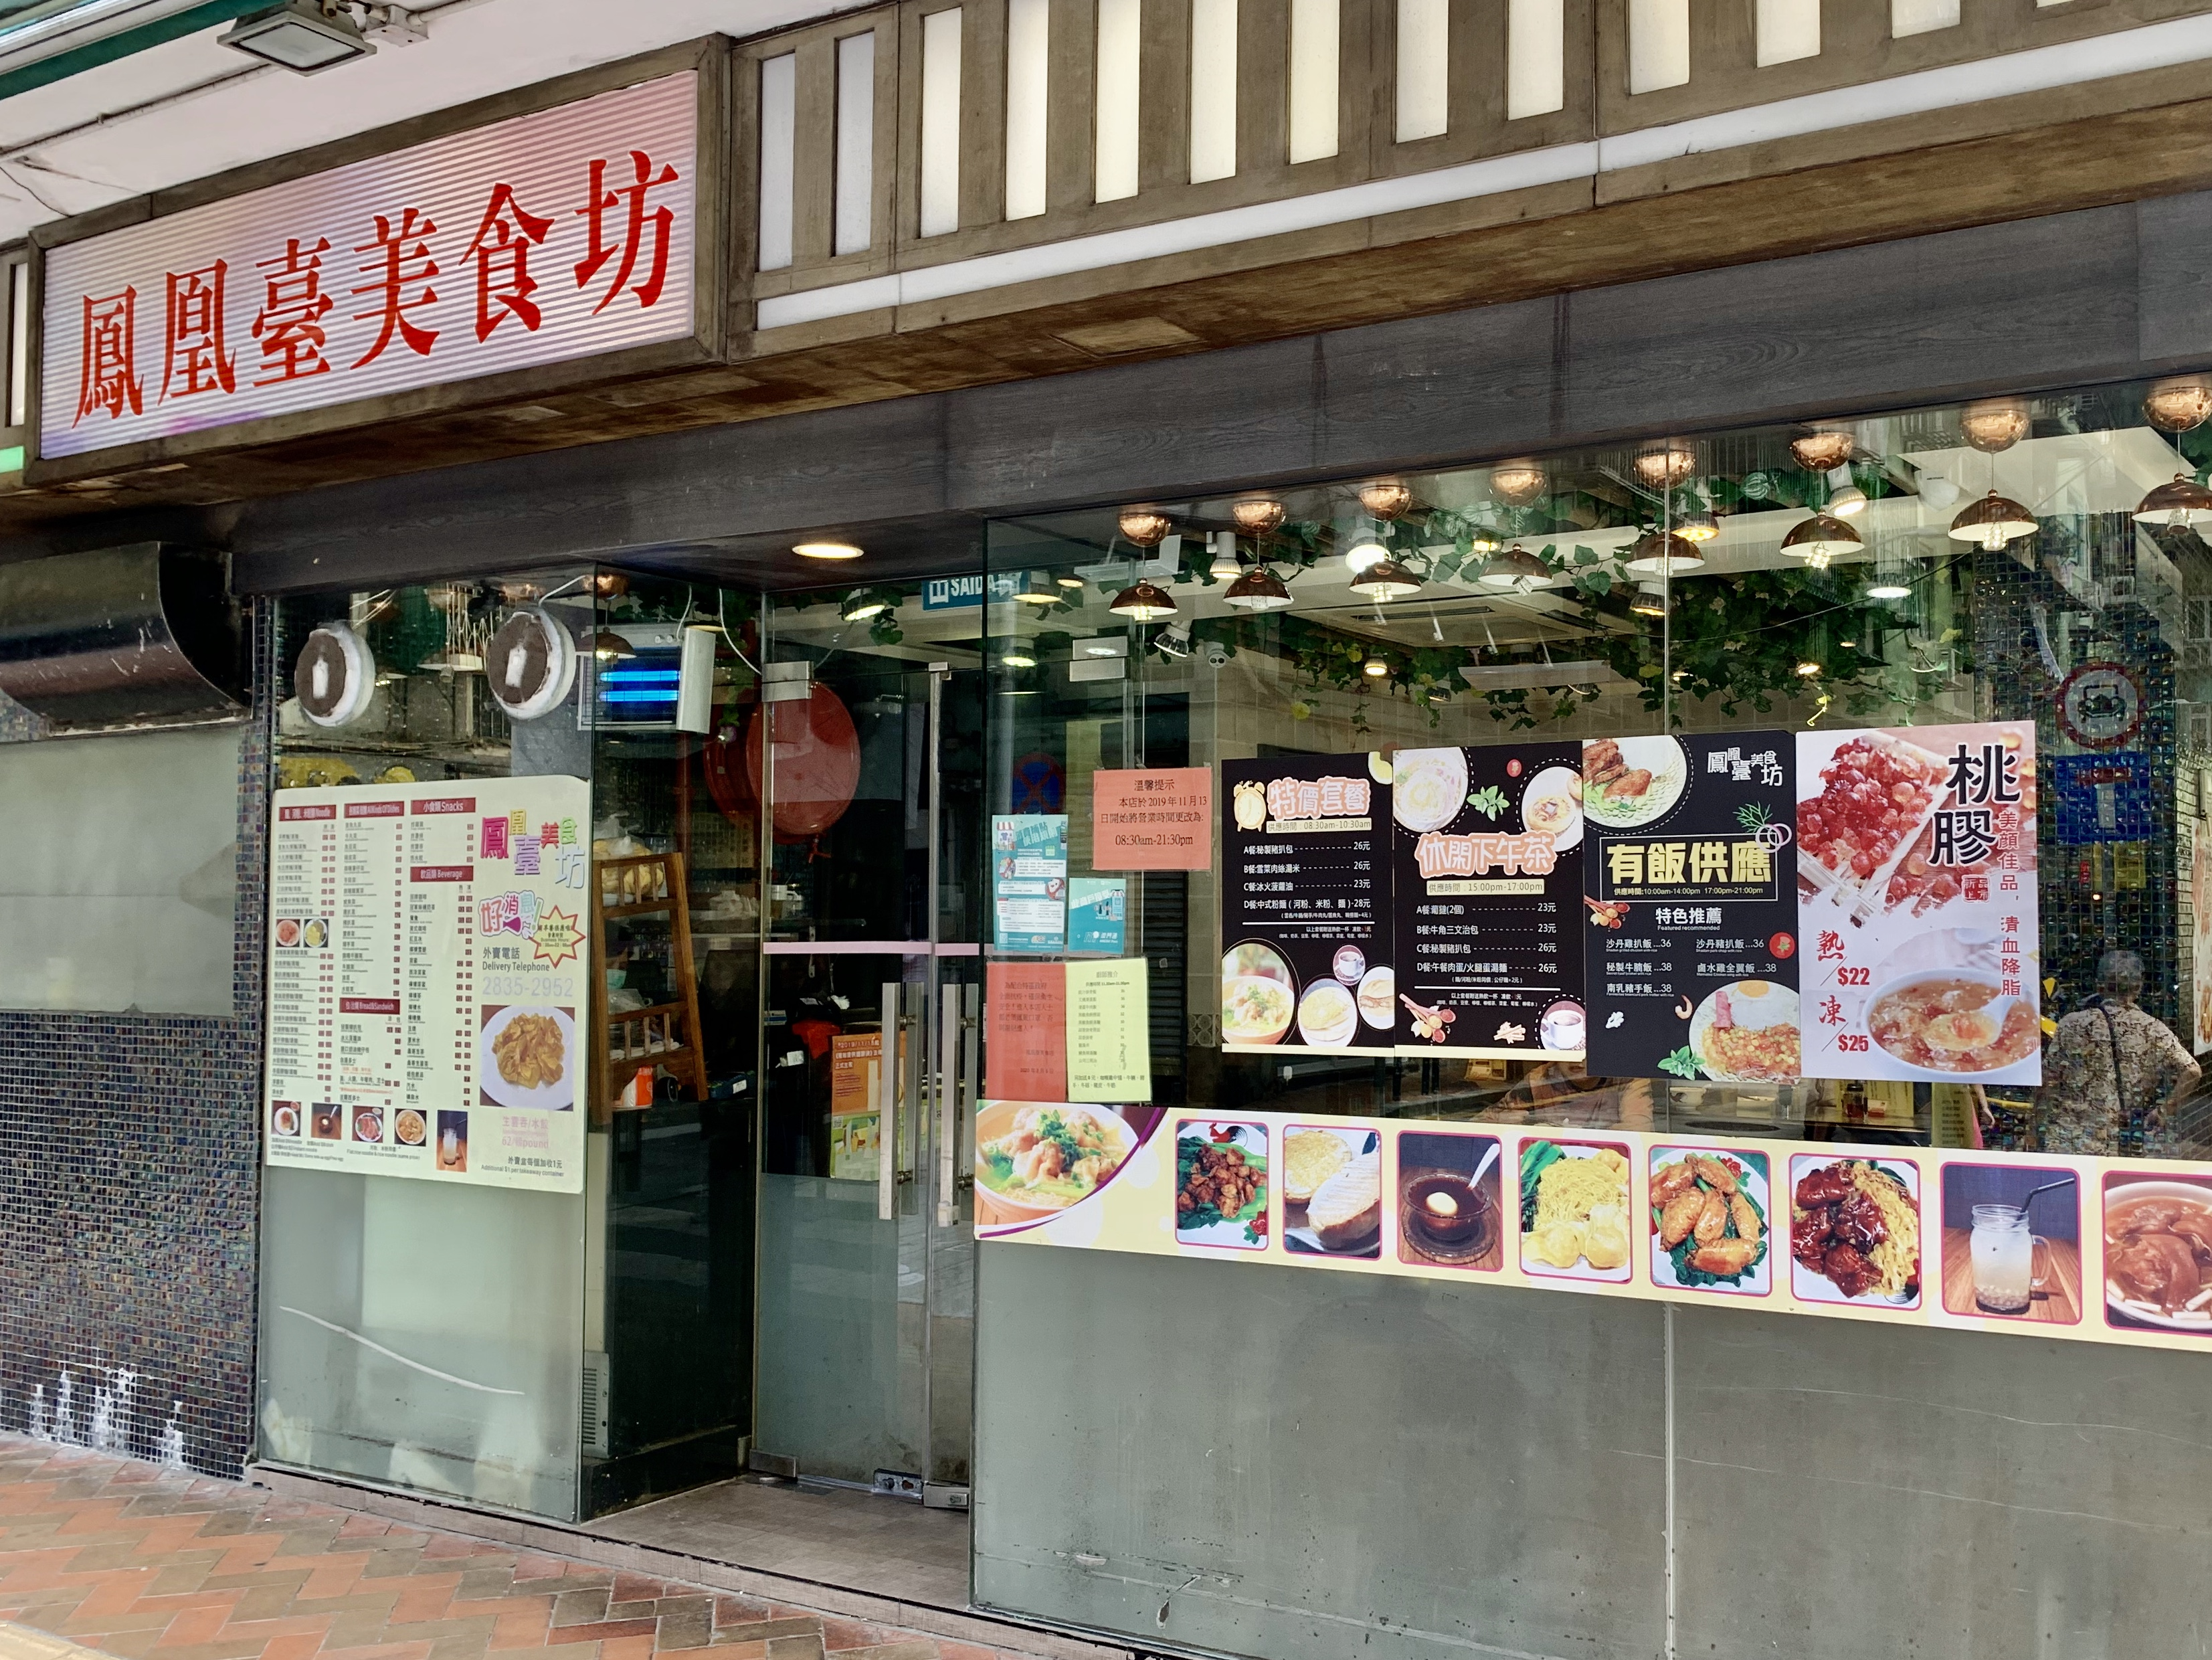 Chinese Restaurant Close to Horta e costa outdoor shot Macau Lifestyle